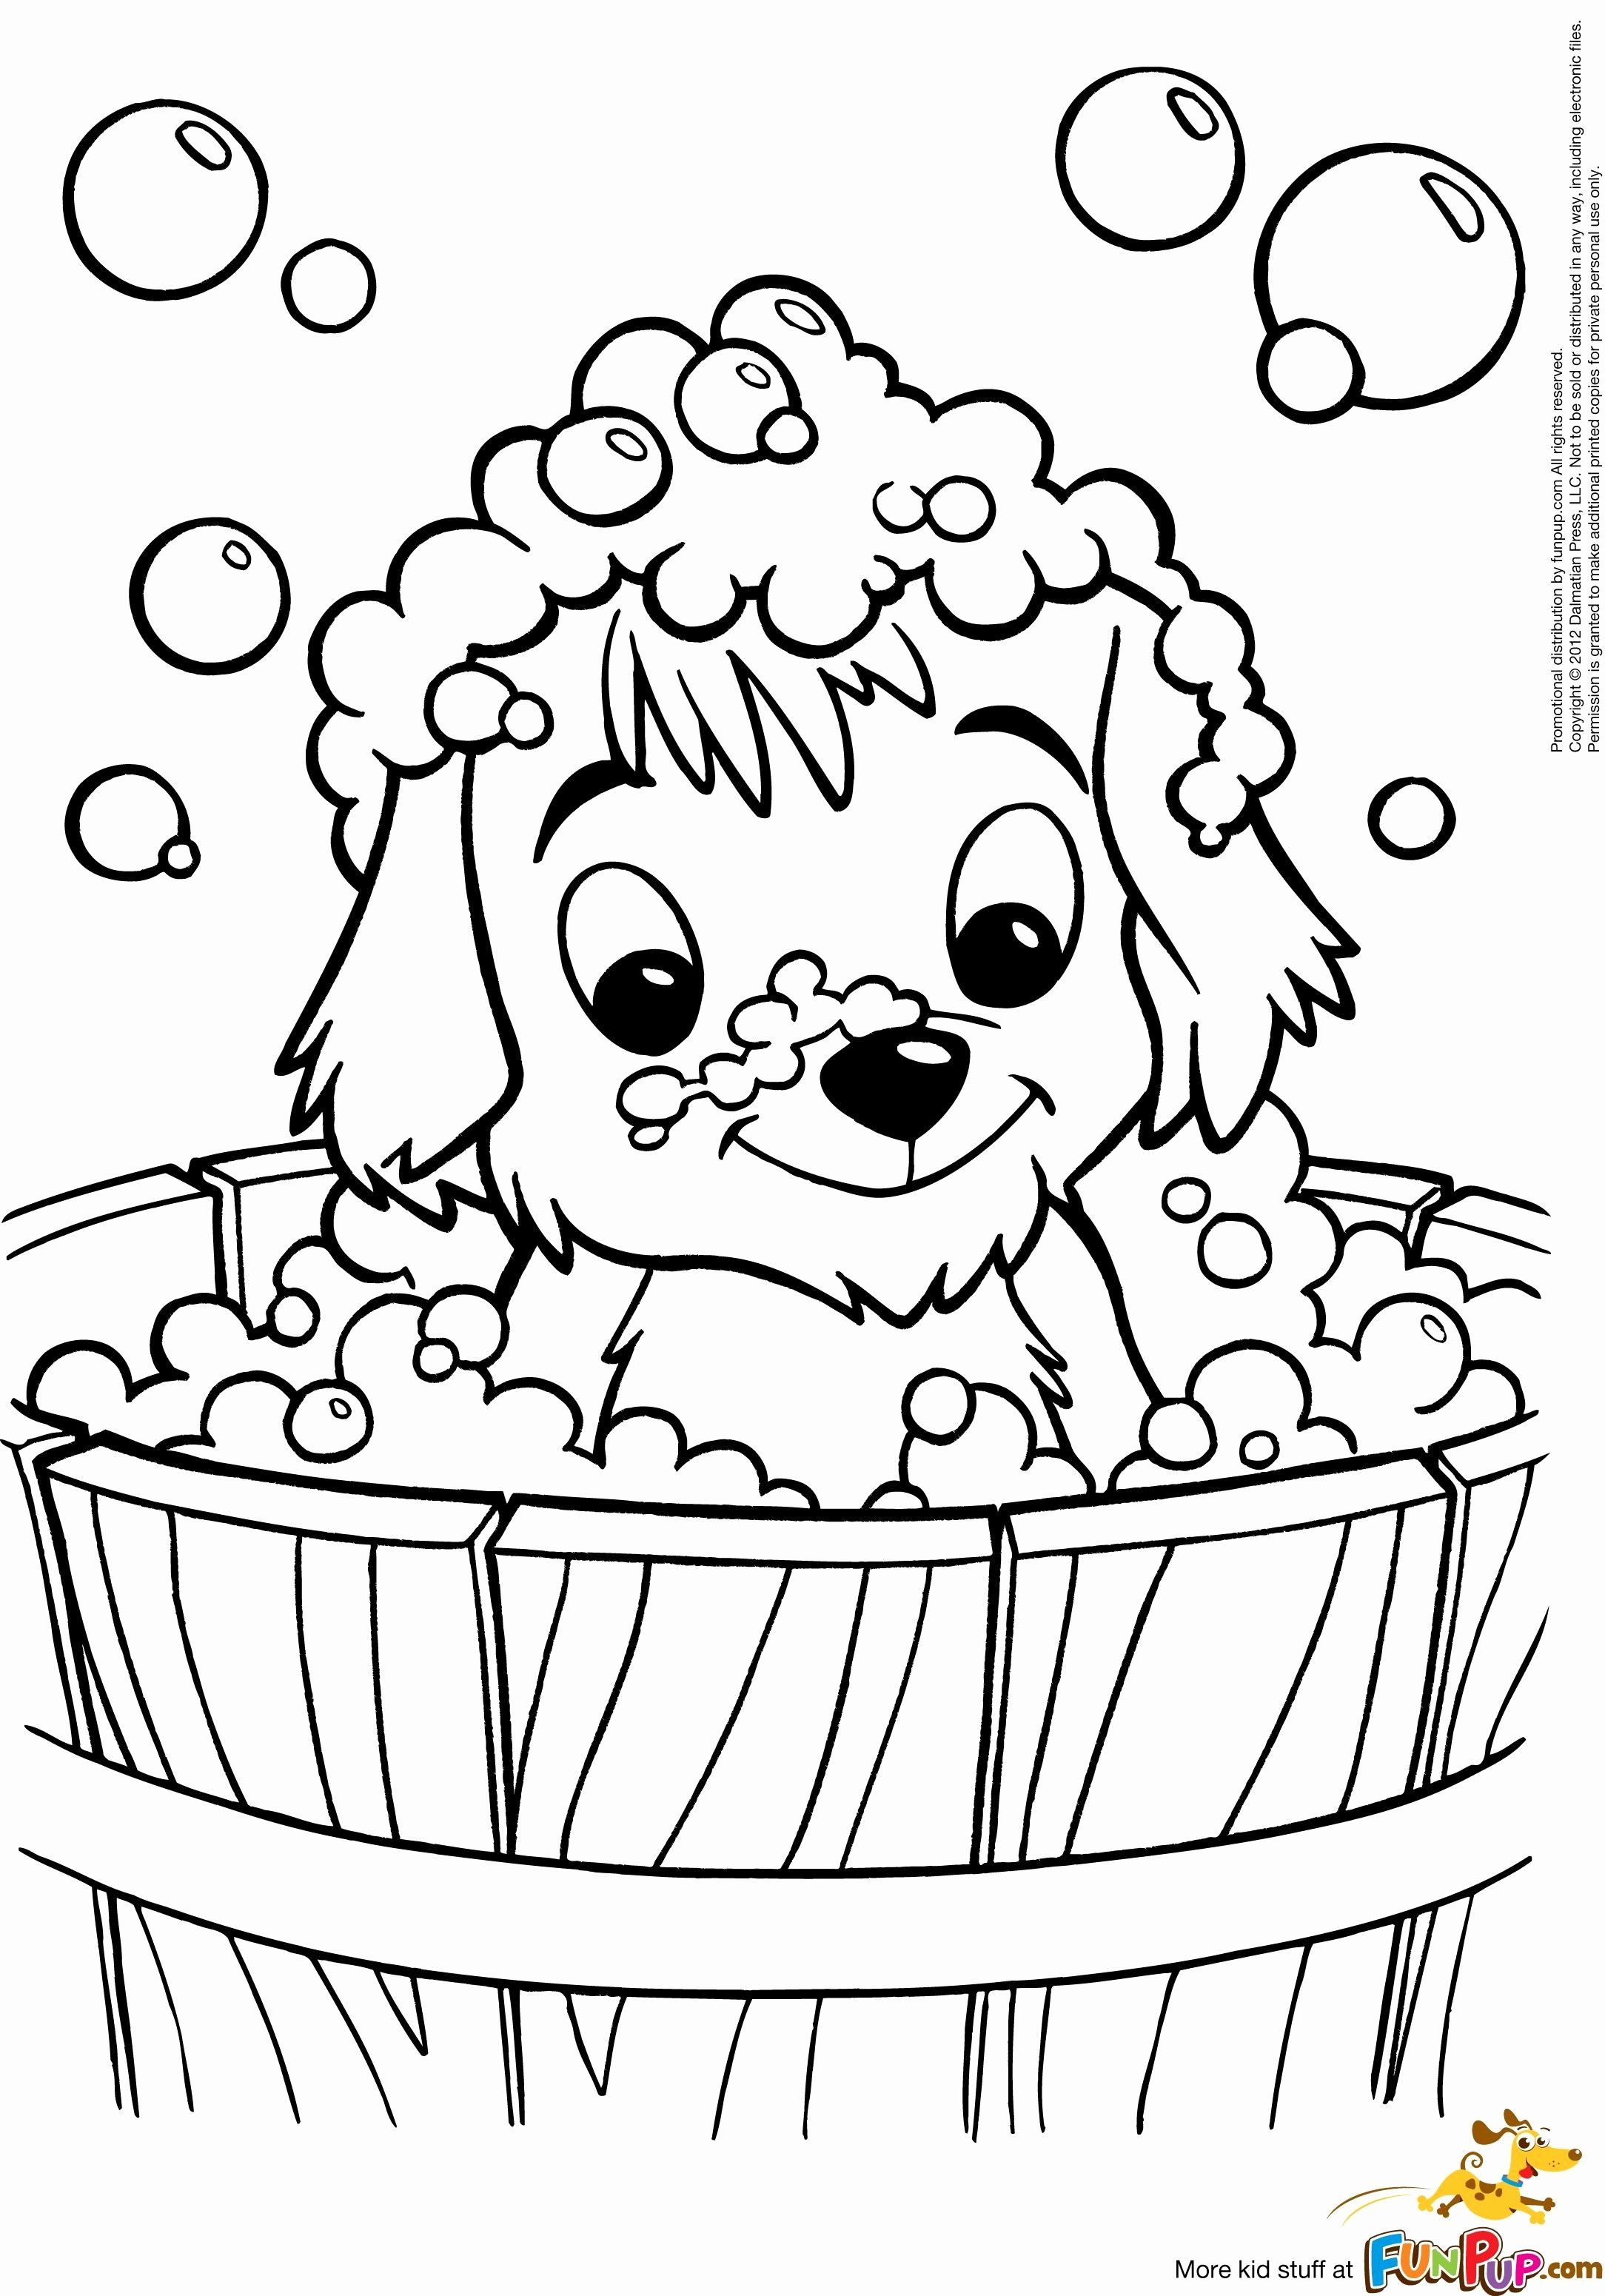 Animal Coloring Pages For Girls With Images Puppy Coloring